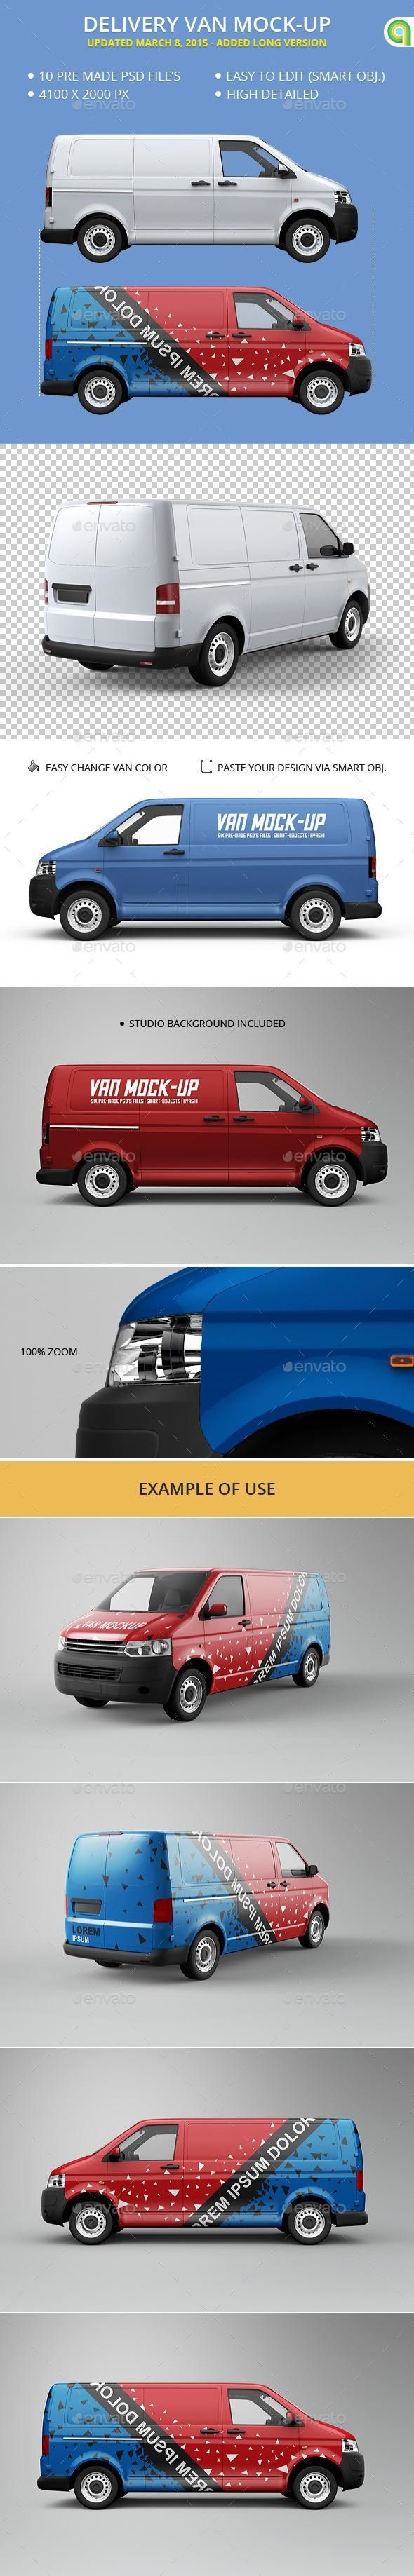 Van MockUp for 8 MockUp psd template VehicleMockup